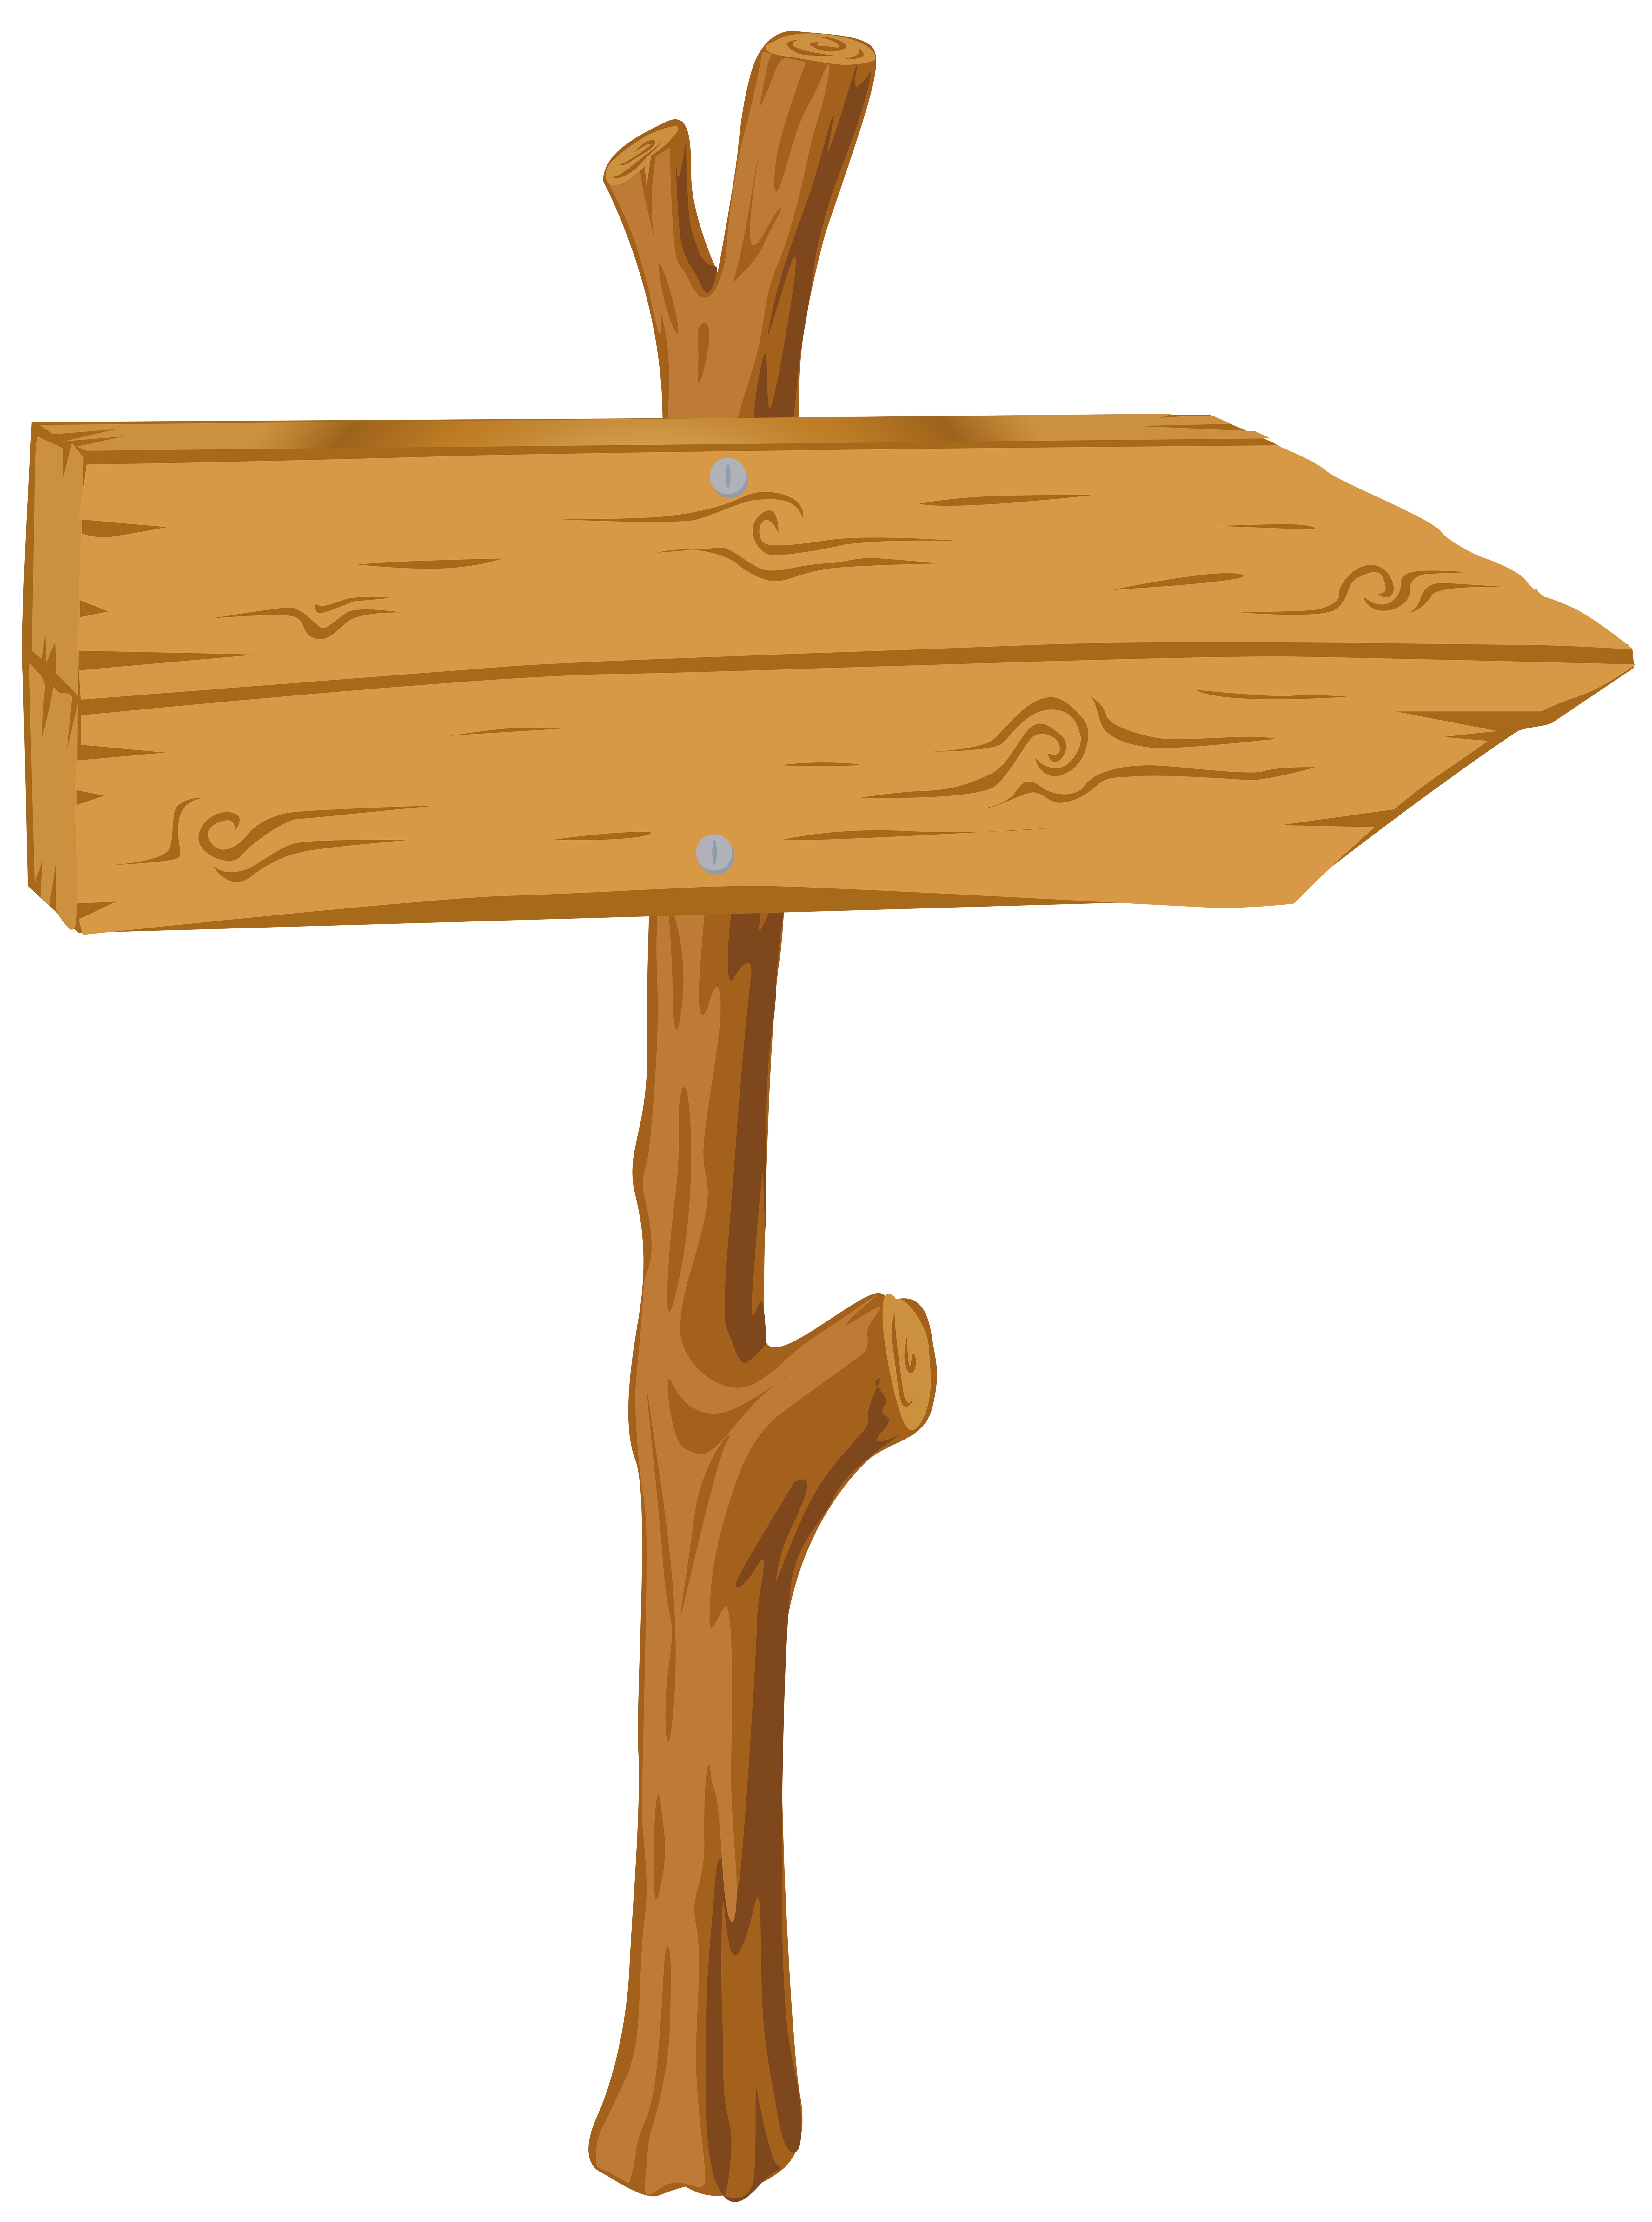 Wood clipart wooden plaque Yopriceville full Wooden View Image